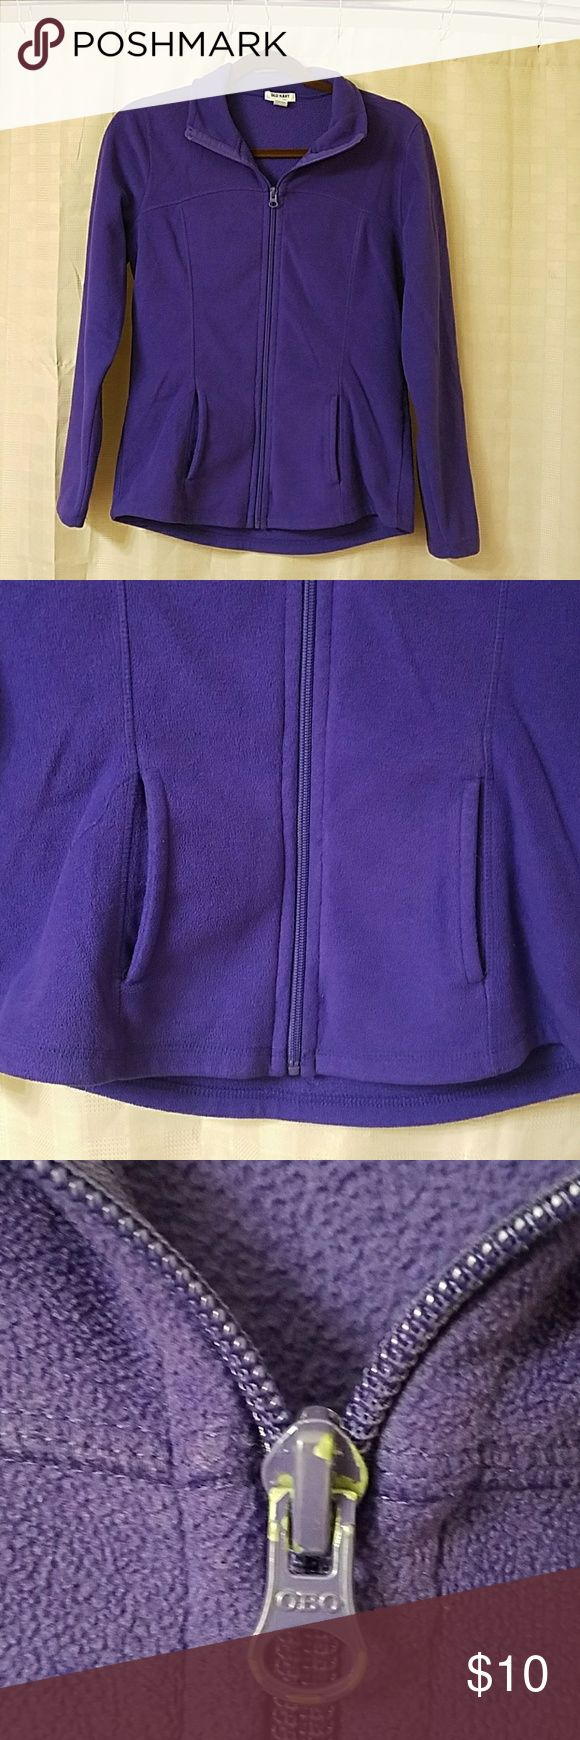 Small Purple zip up fleece jacket Measures approximately 18 1/2 inches from armpit to armpit lying flat.  Some paint has come of zipper pull but im good used condition. Old Navy Tops Sweatshirts & Hoodies